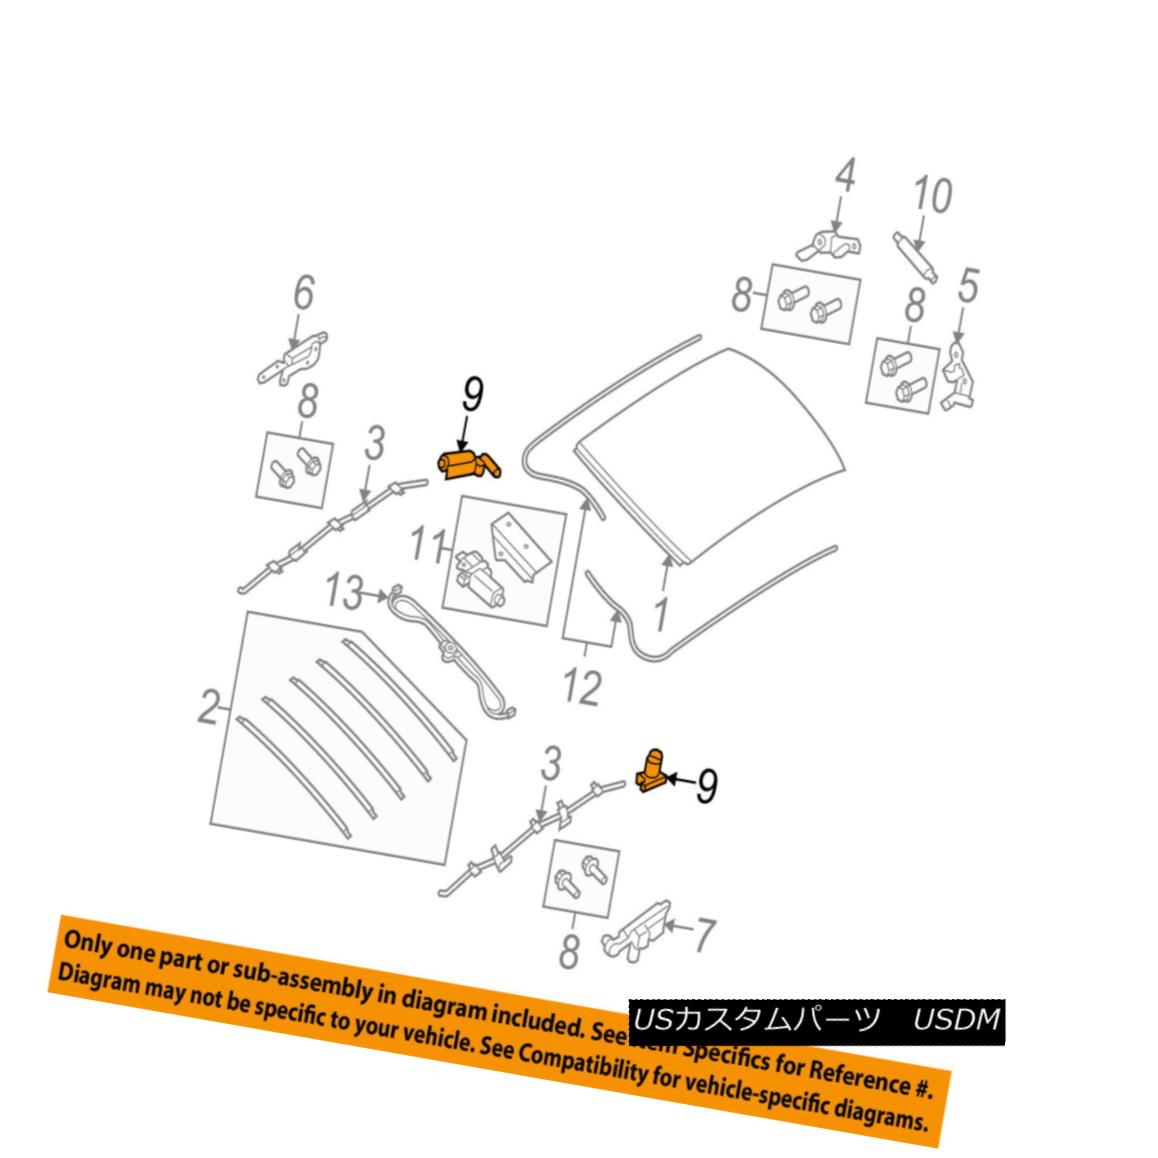 幌・ソフトトップ SMART OEM 08-16 Fortwo Convertible/soft Top-Catch 4517760016 スマートOEM 08-16 Fortwo Convertible / so ft Top-Catch 4517760016